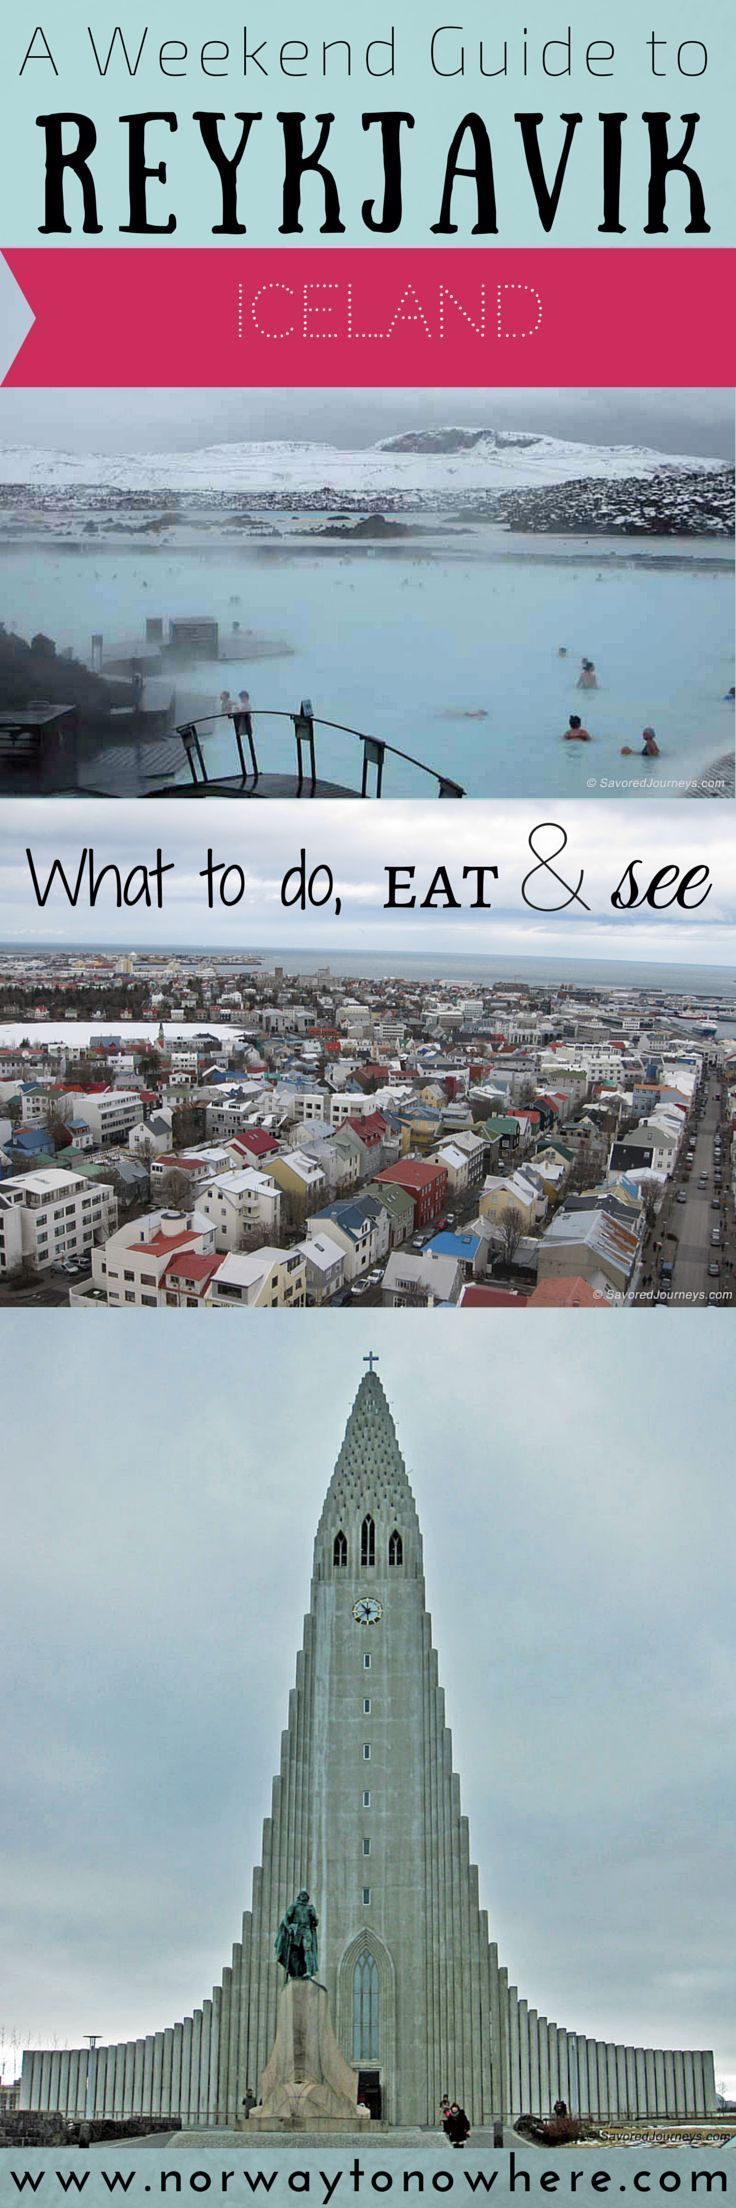 What to do, where to stay and what NOT to miss in beautiful, quirky Reykjavik, Iceland!